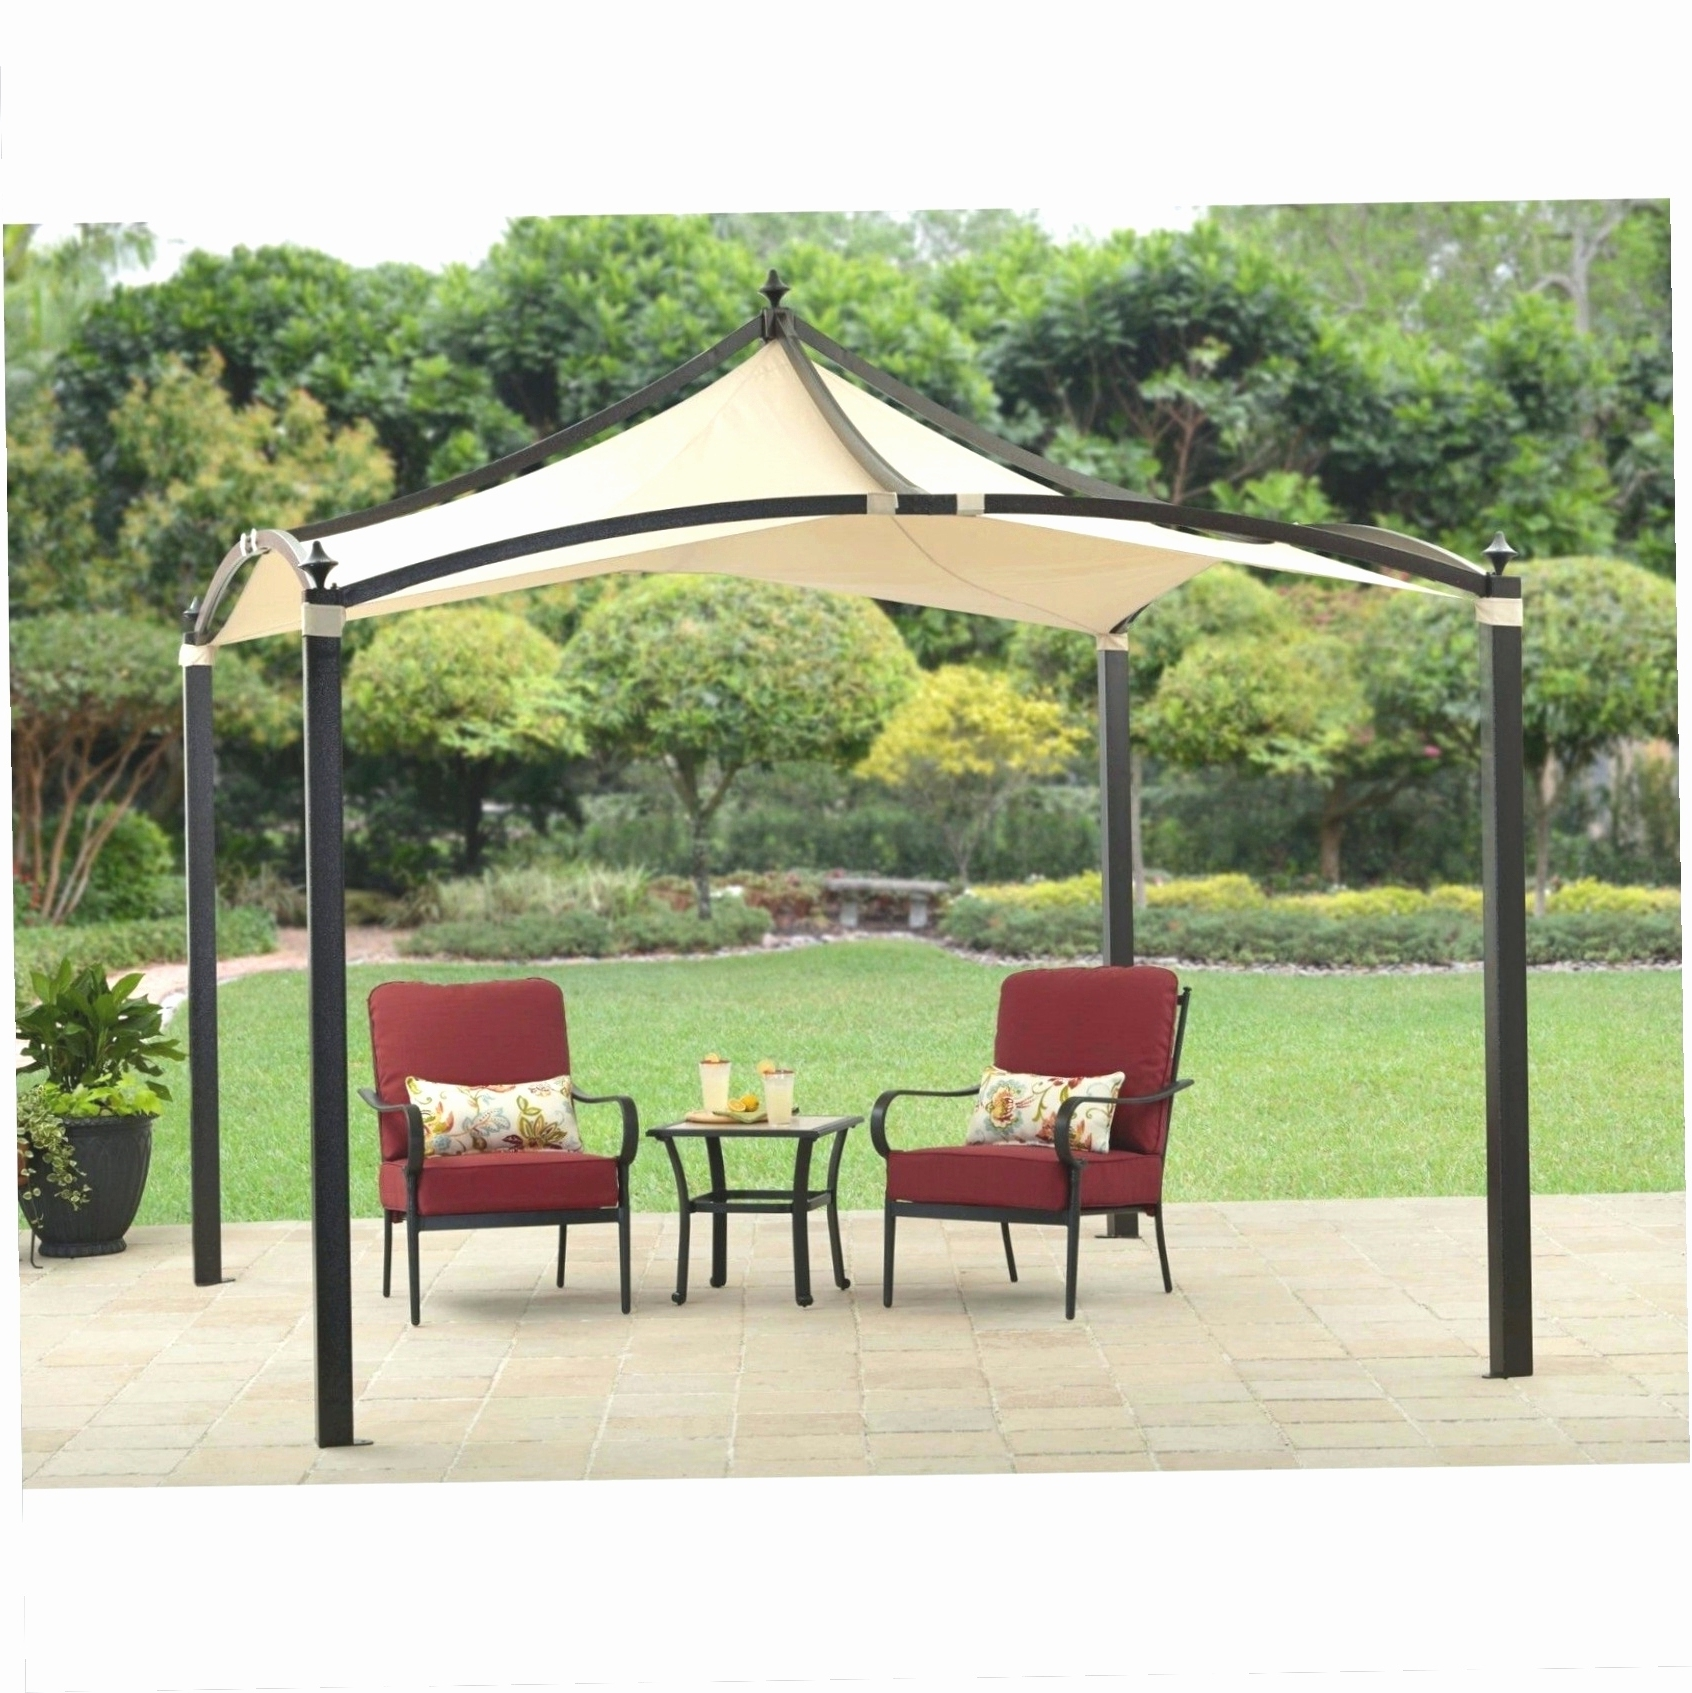 Trendy Mosquito Netting For Patio Umbrella Unique Patio Ideas 11 Steel Fset Throughout Patio Umbrellas With Netting (Gallery 20 of 20)